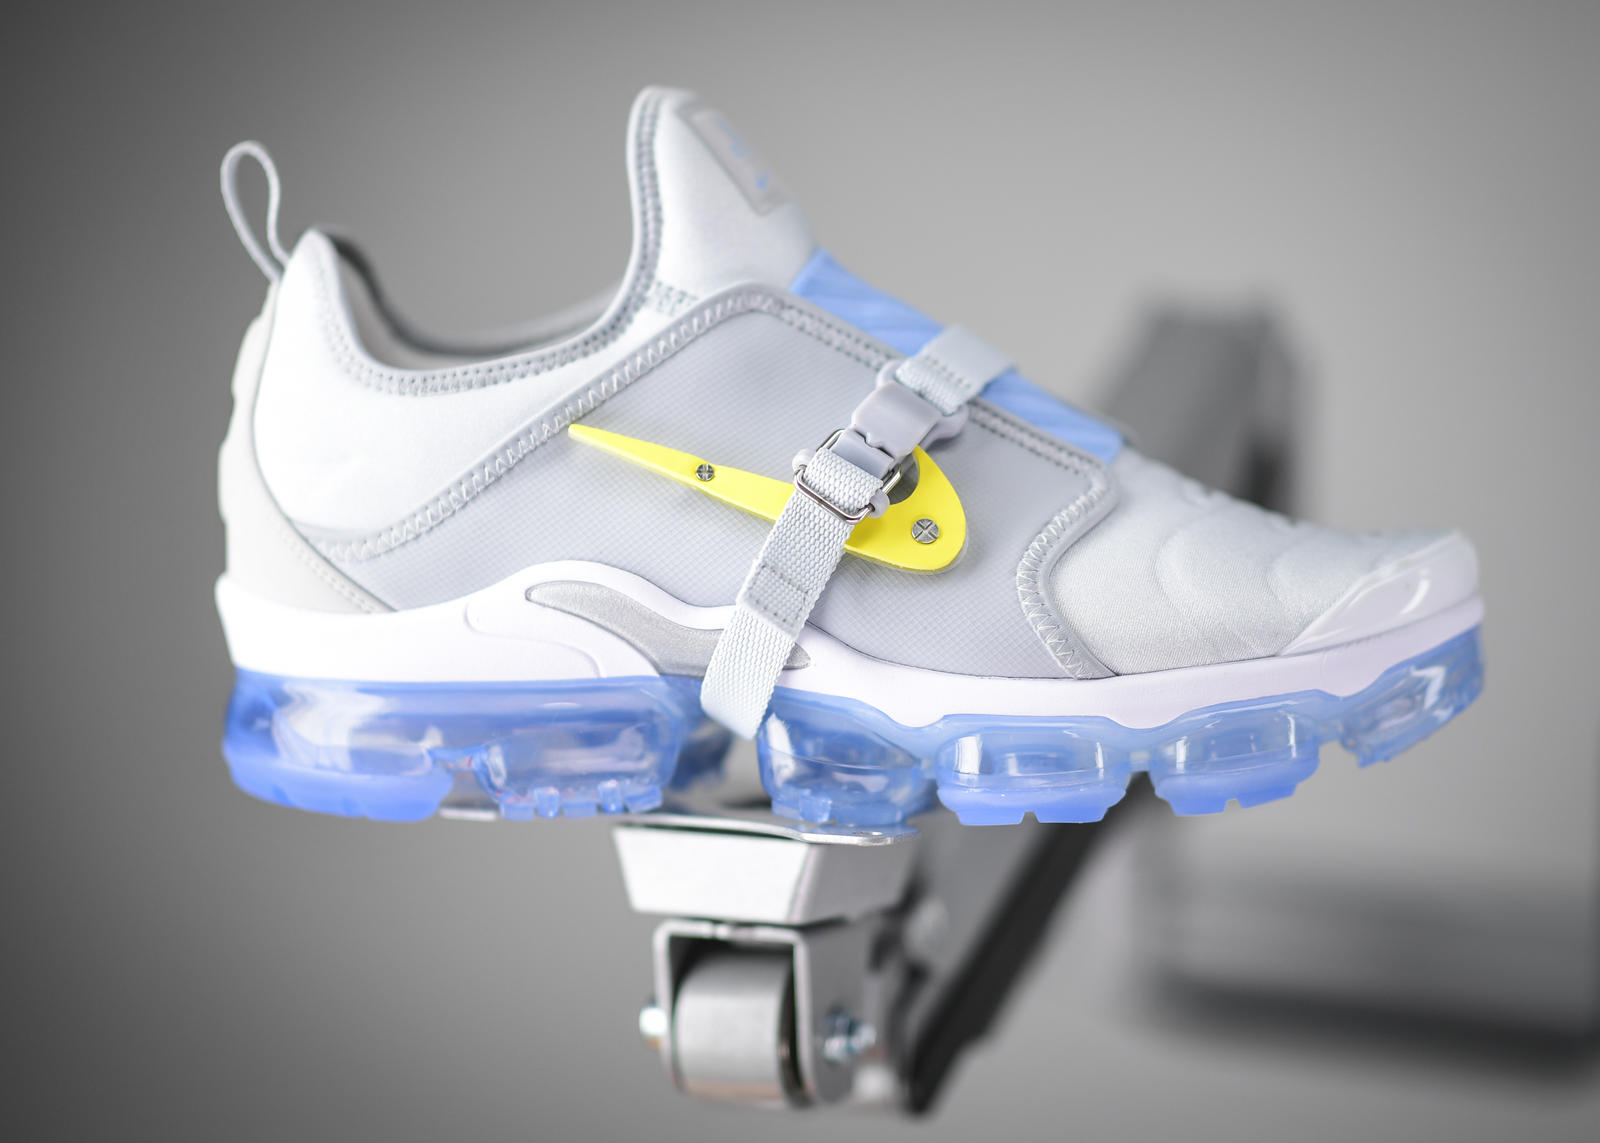 4ddbfbb67147b2 Here are the Final Designs of the Nike  On Air Winners  Mock Draft